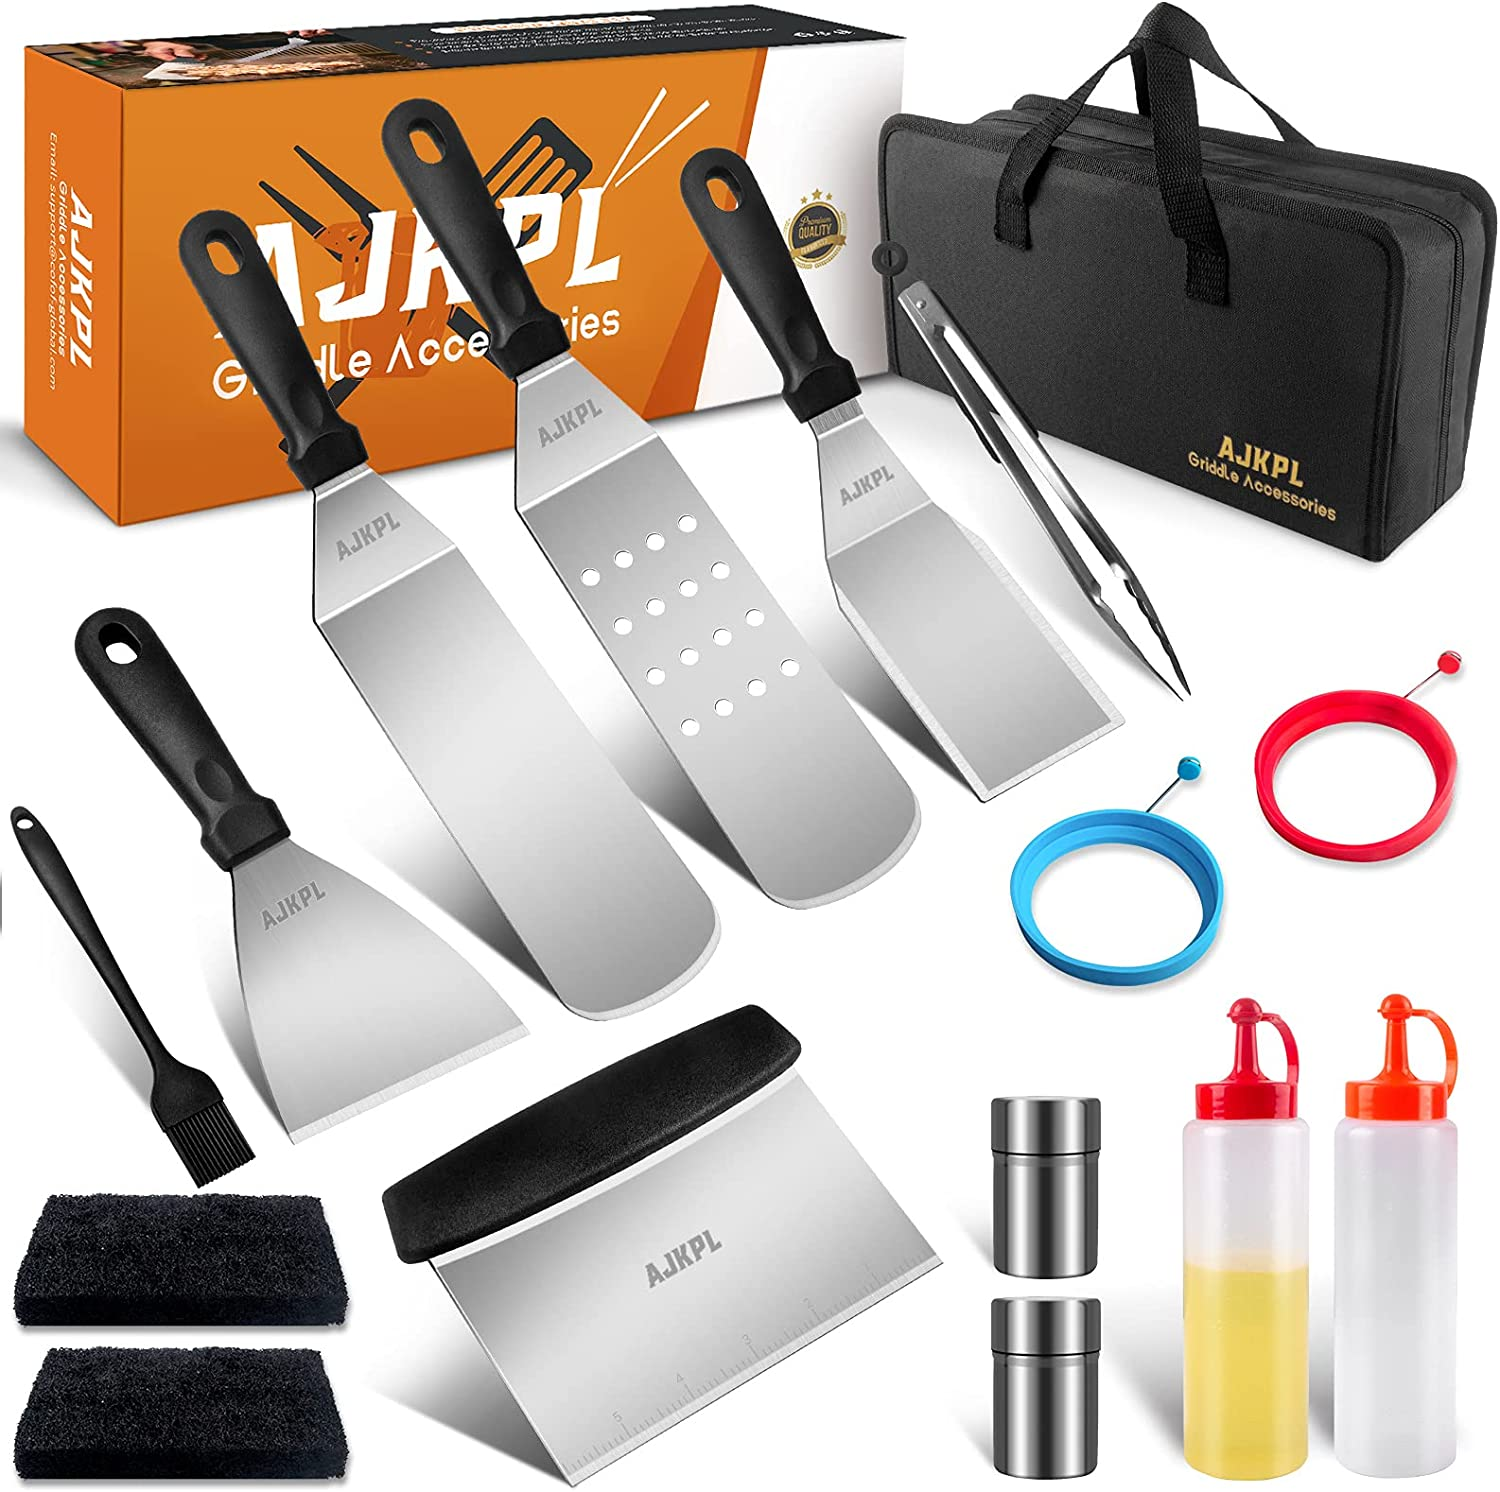 Griddle Accessories Kit, Flat Top Grill Accessories with Metal Spatula, Griddle Scraper, Cleaning Kit for Blackstone and Camp Chef, Griddle Accessories Tools Set for Outdoor, Hibachi and Teppanyaki : Garden & Outdoor